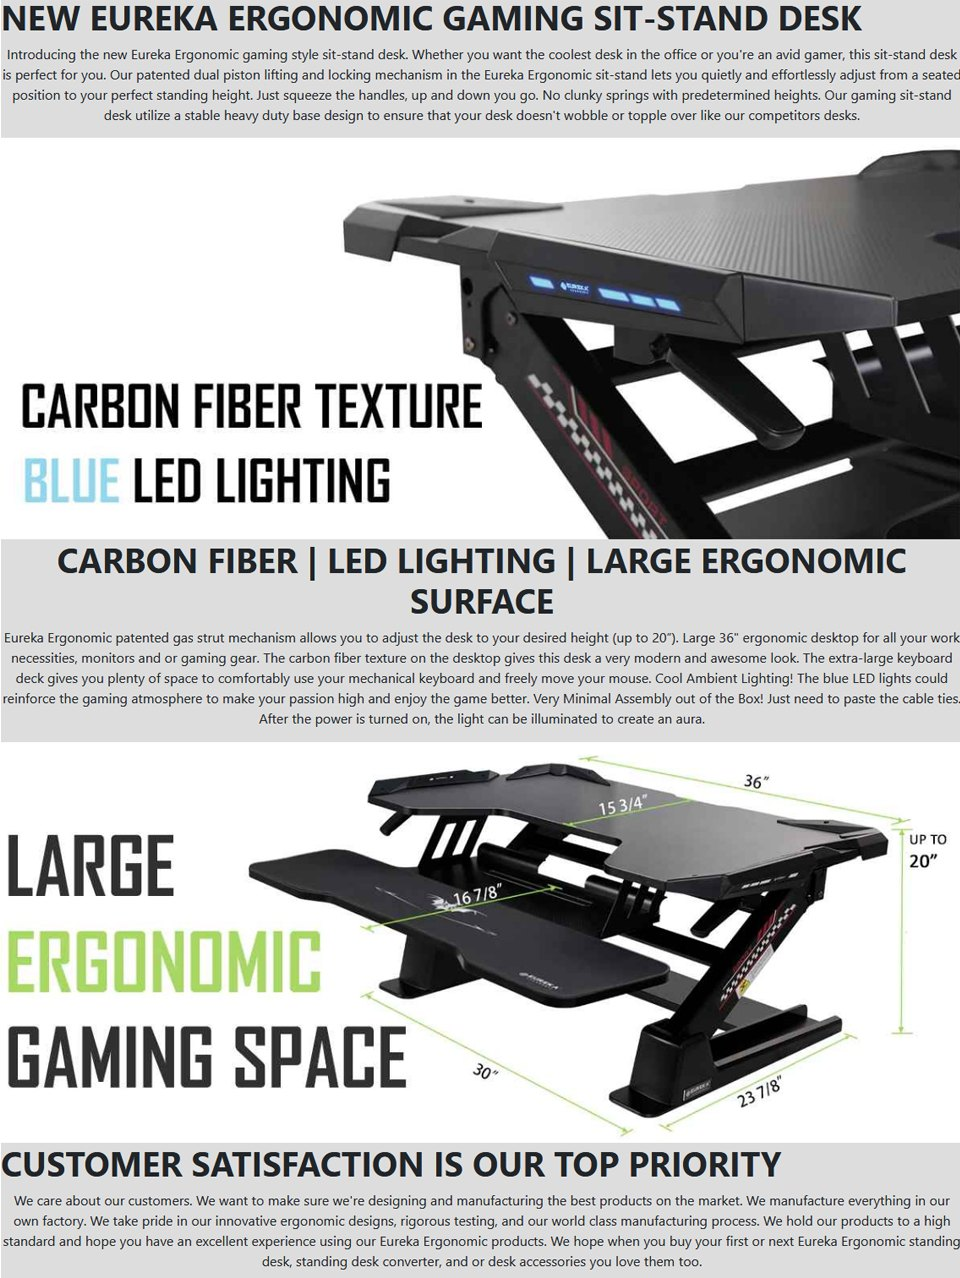 Eureka Ergonomic 36CG Sit-stand Desk features